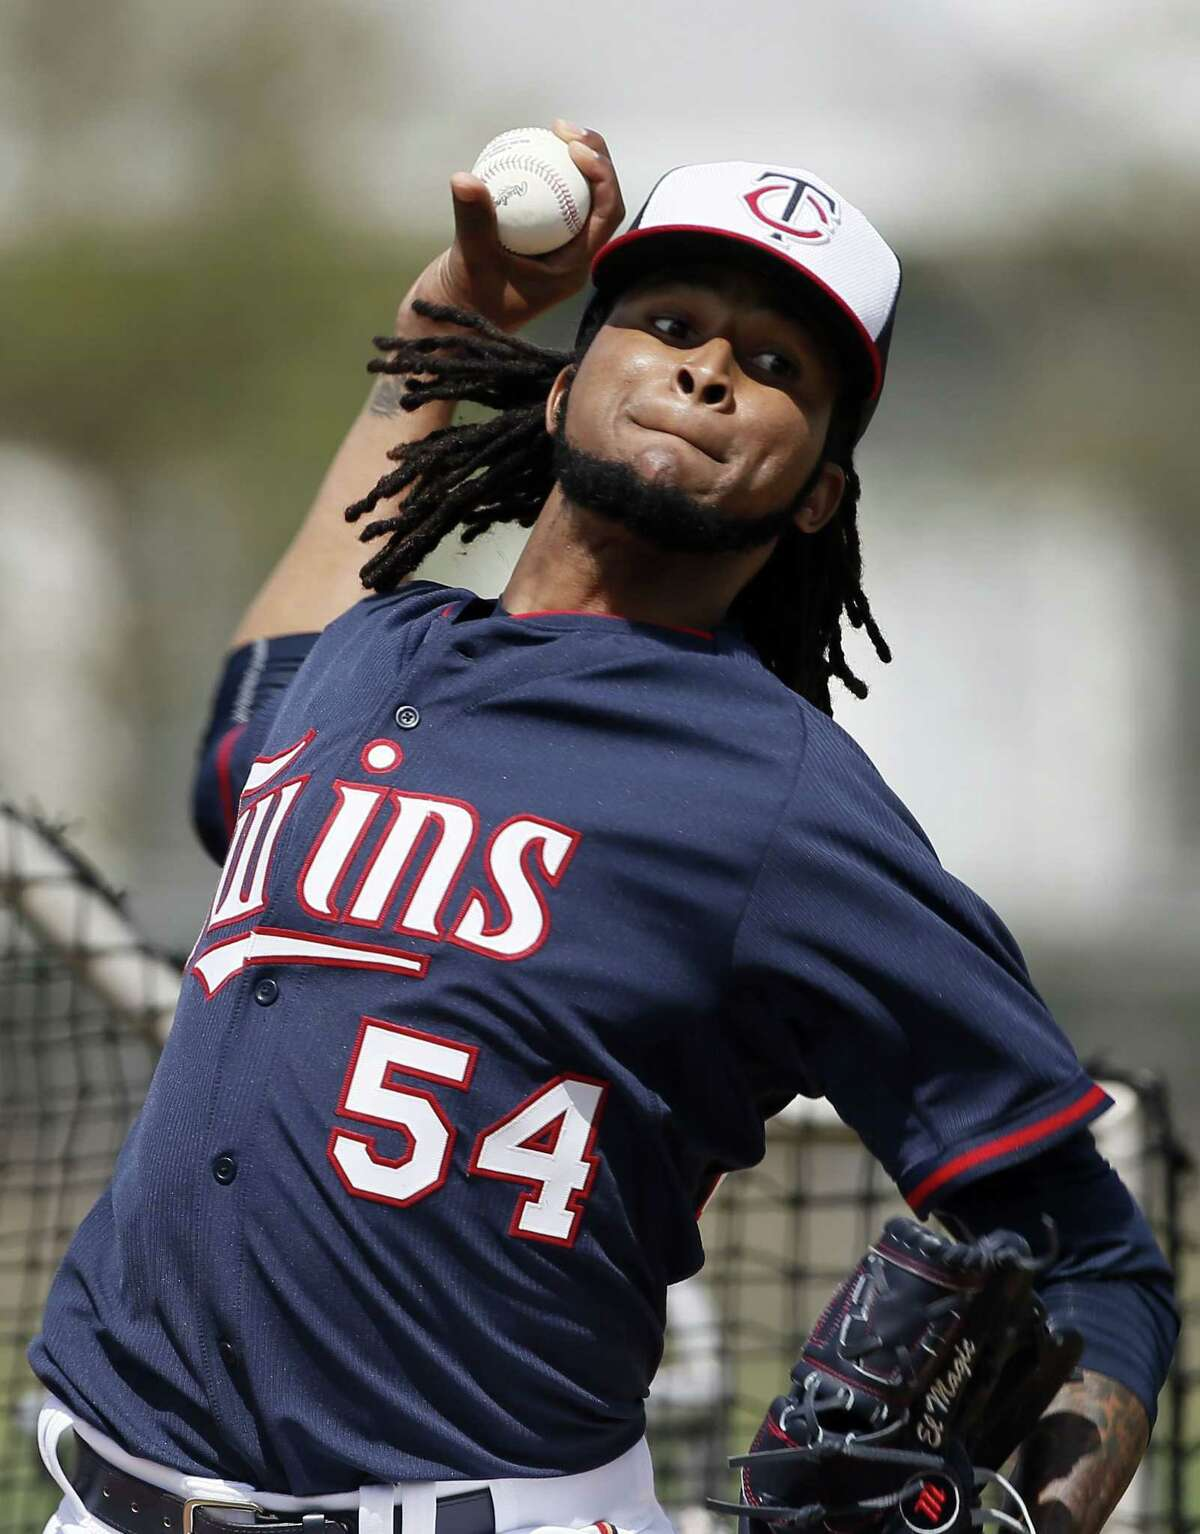 Minnesota Twins starting pitcher Ervin Santana has been suspended for 80 games by Major League Baseball after testing positive for the performance-enhancing substance Stanozolol.